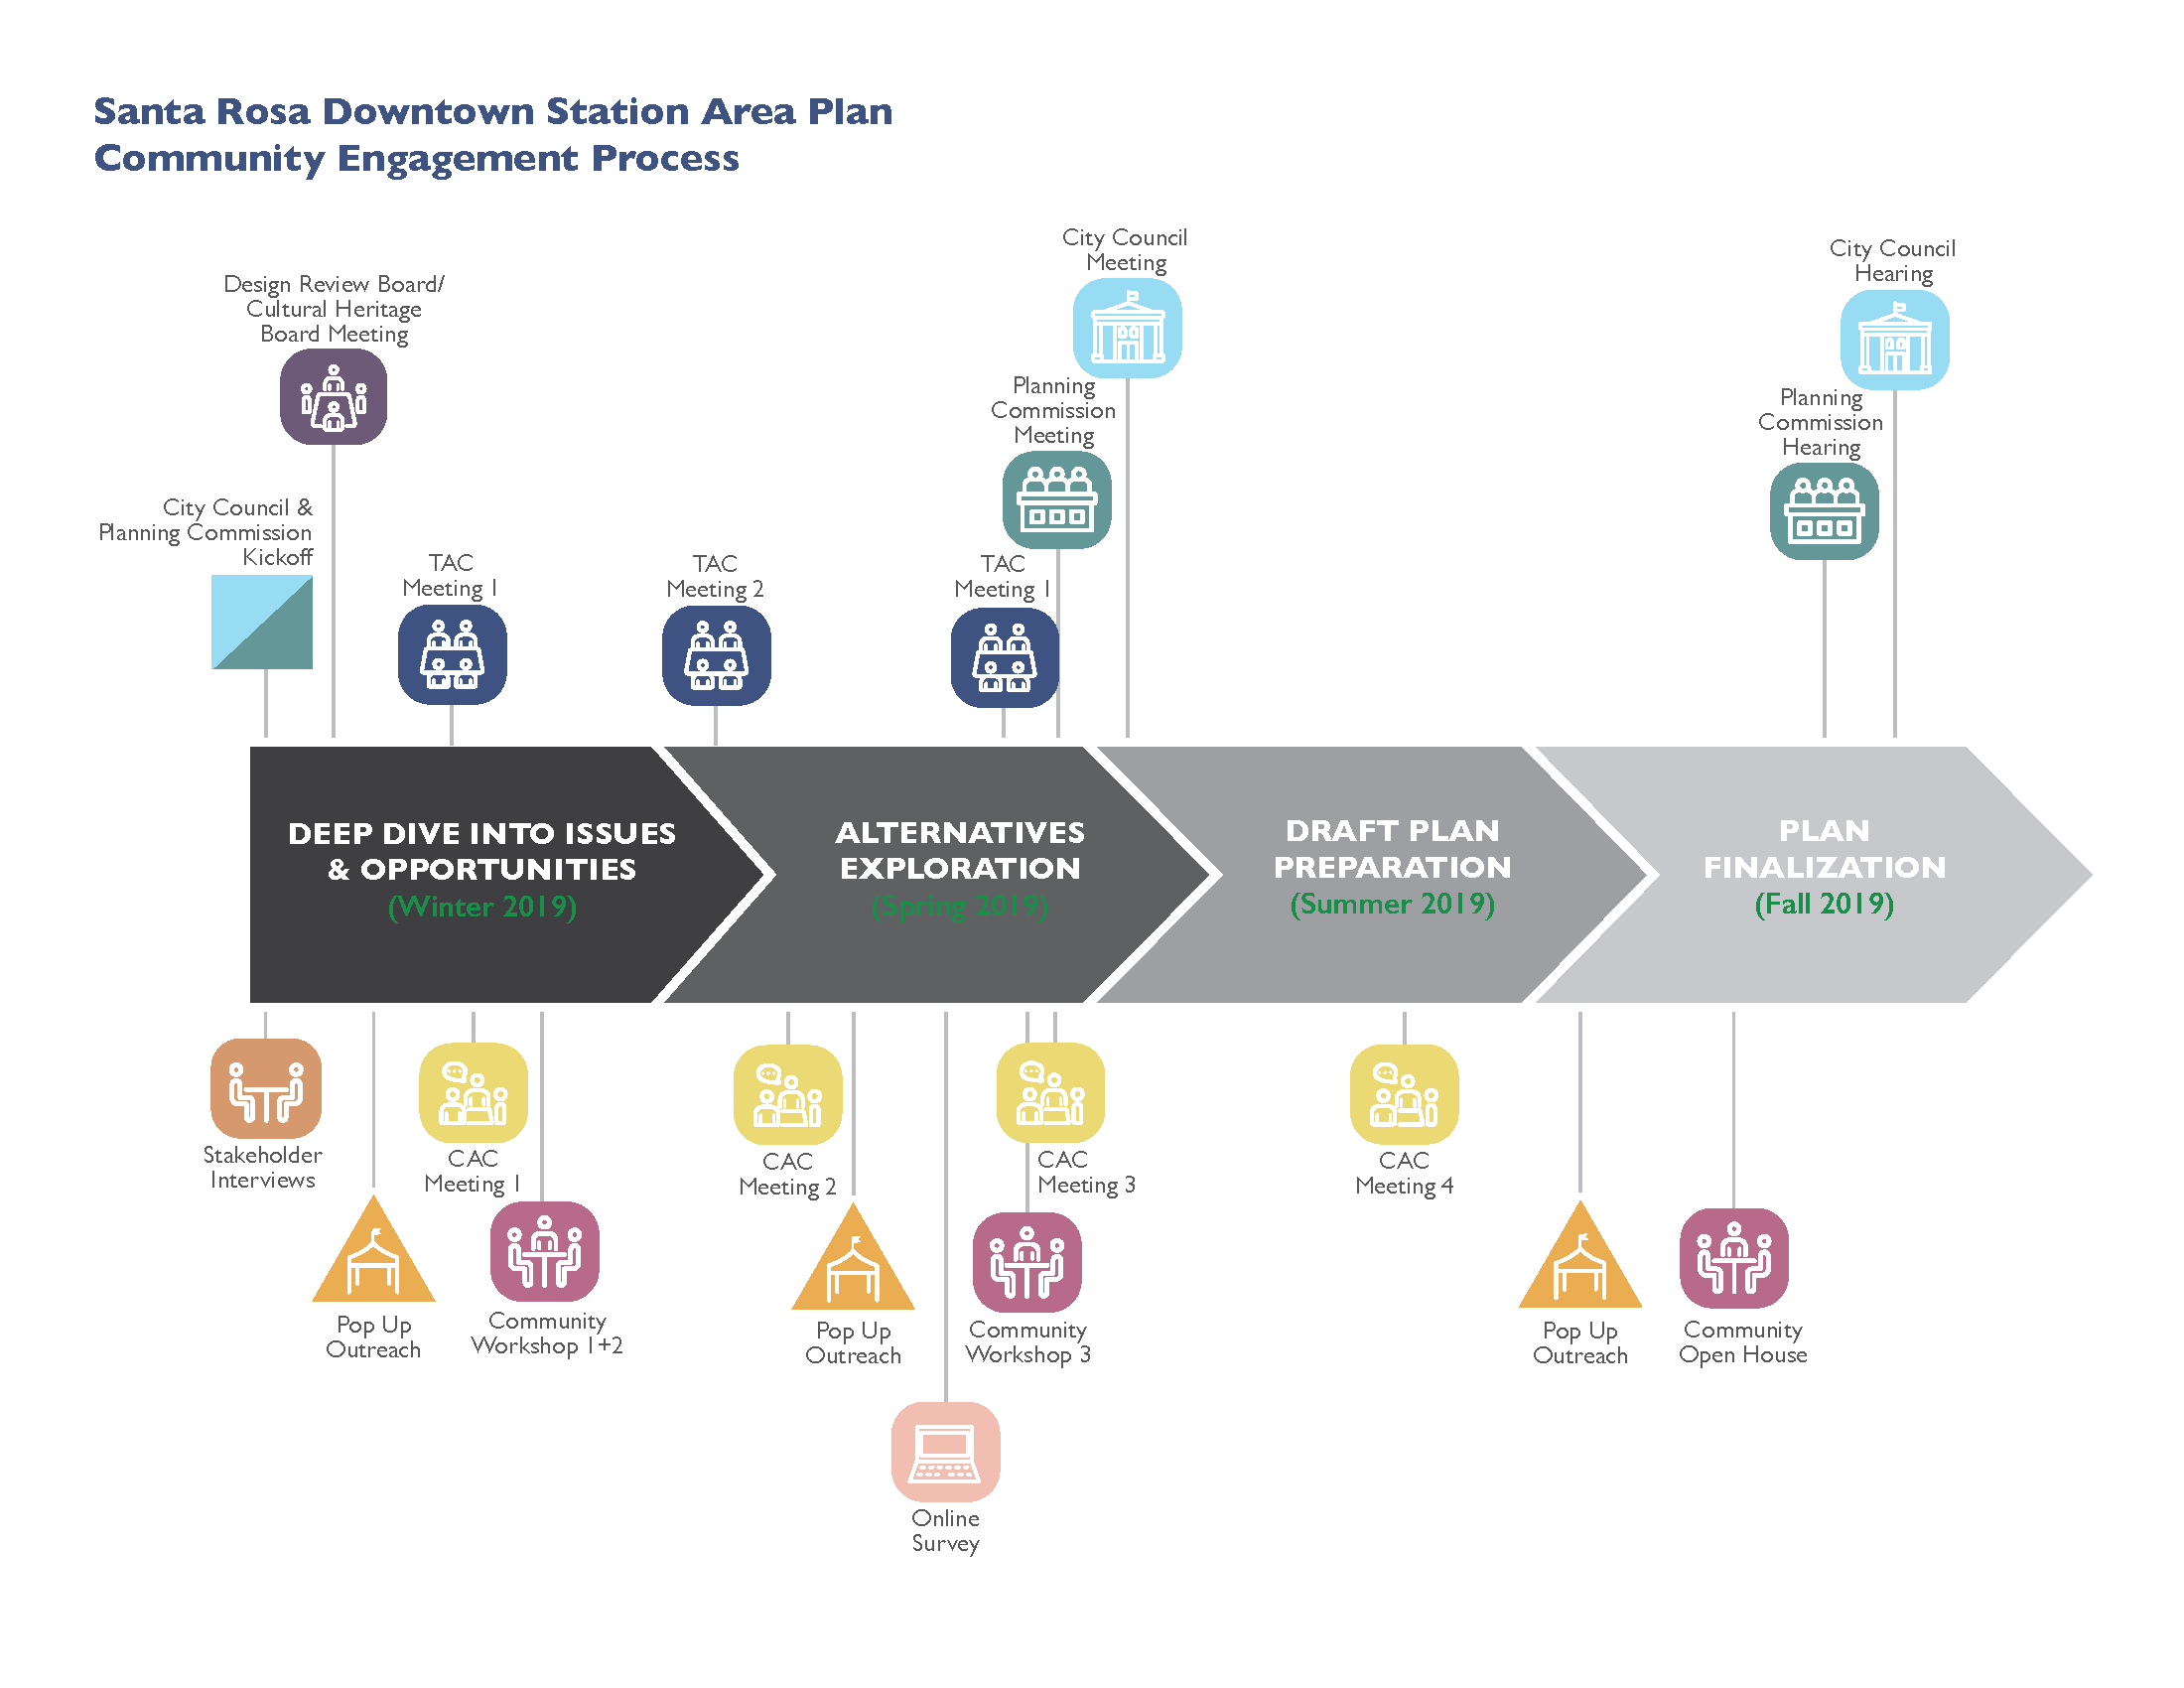 Community Engagement Process Timeline Opens in new window